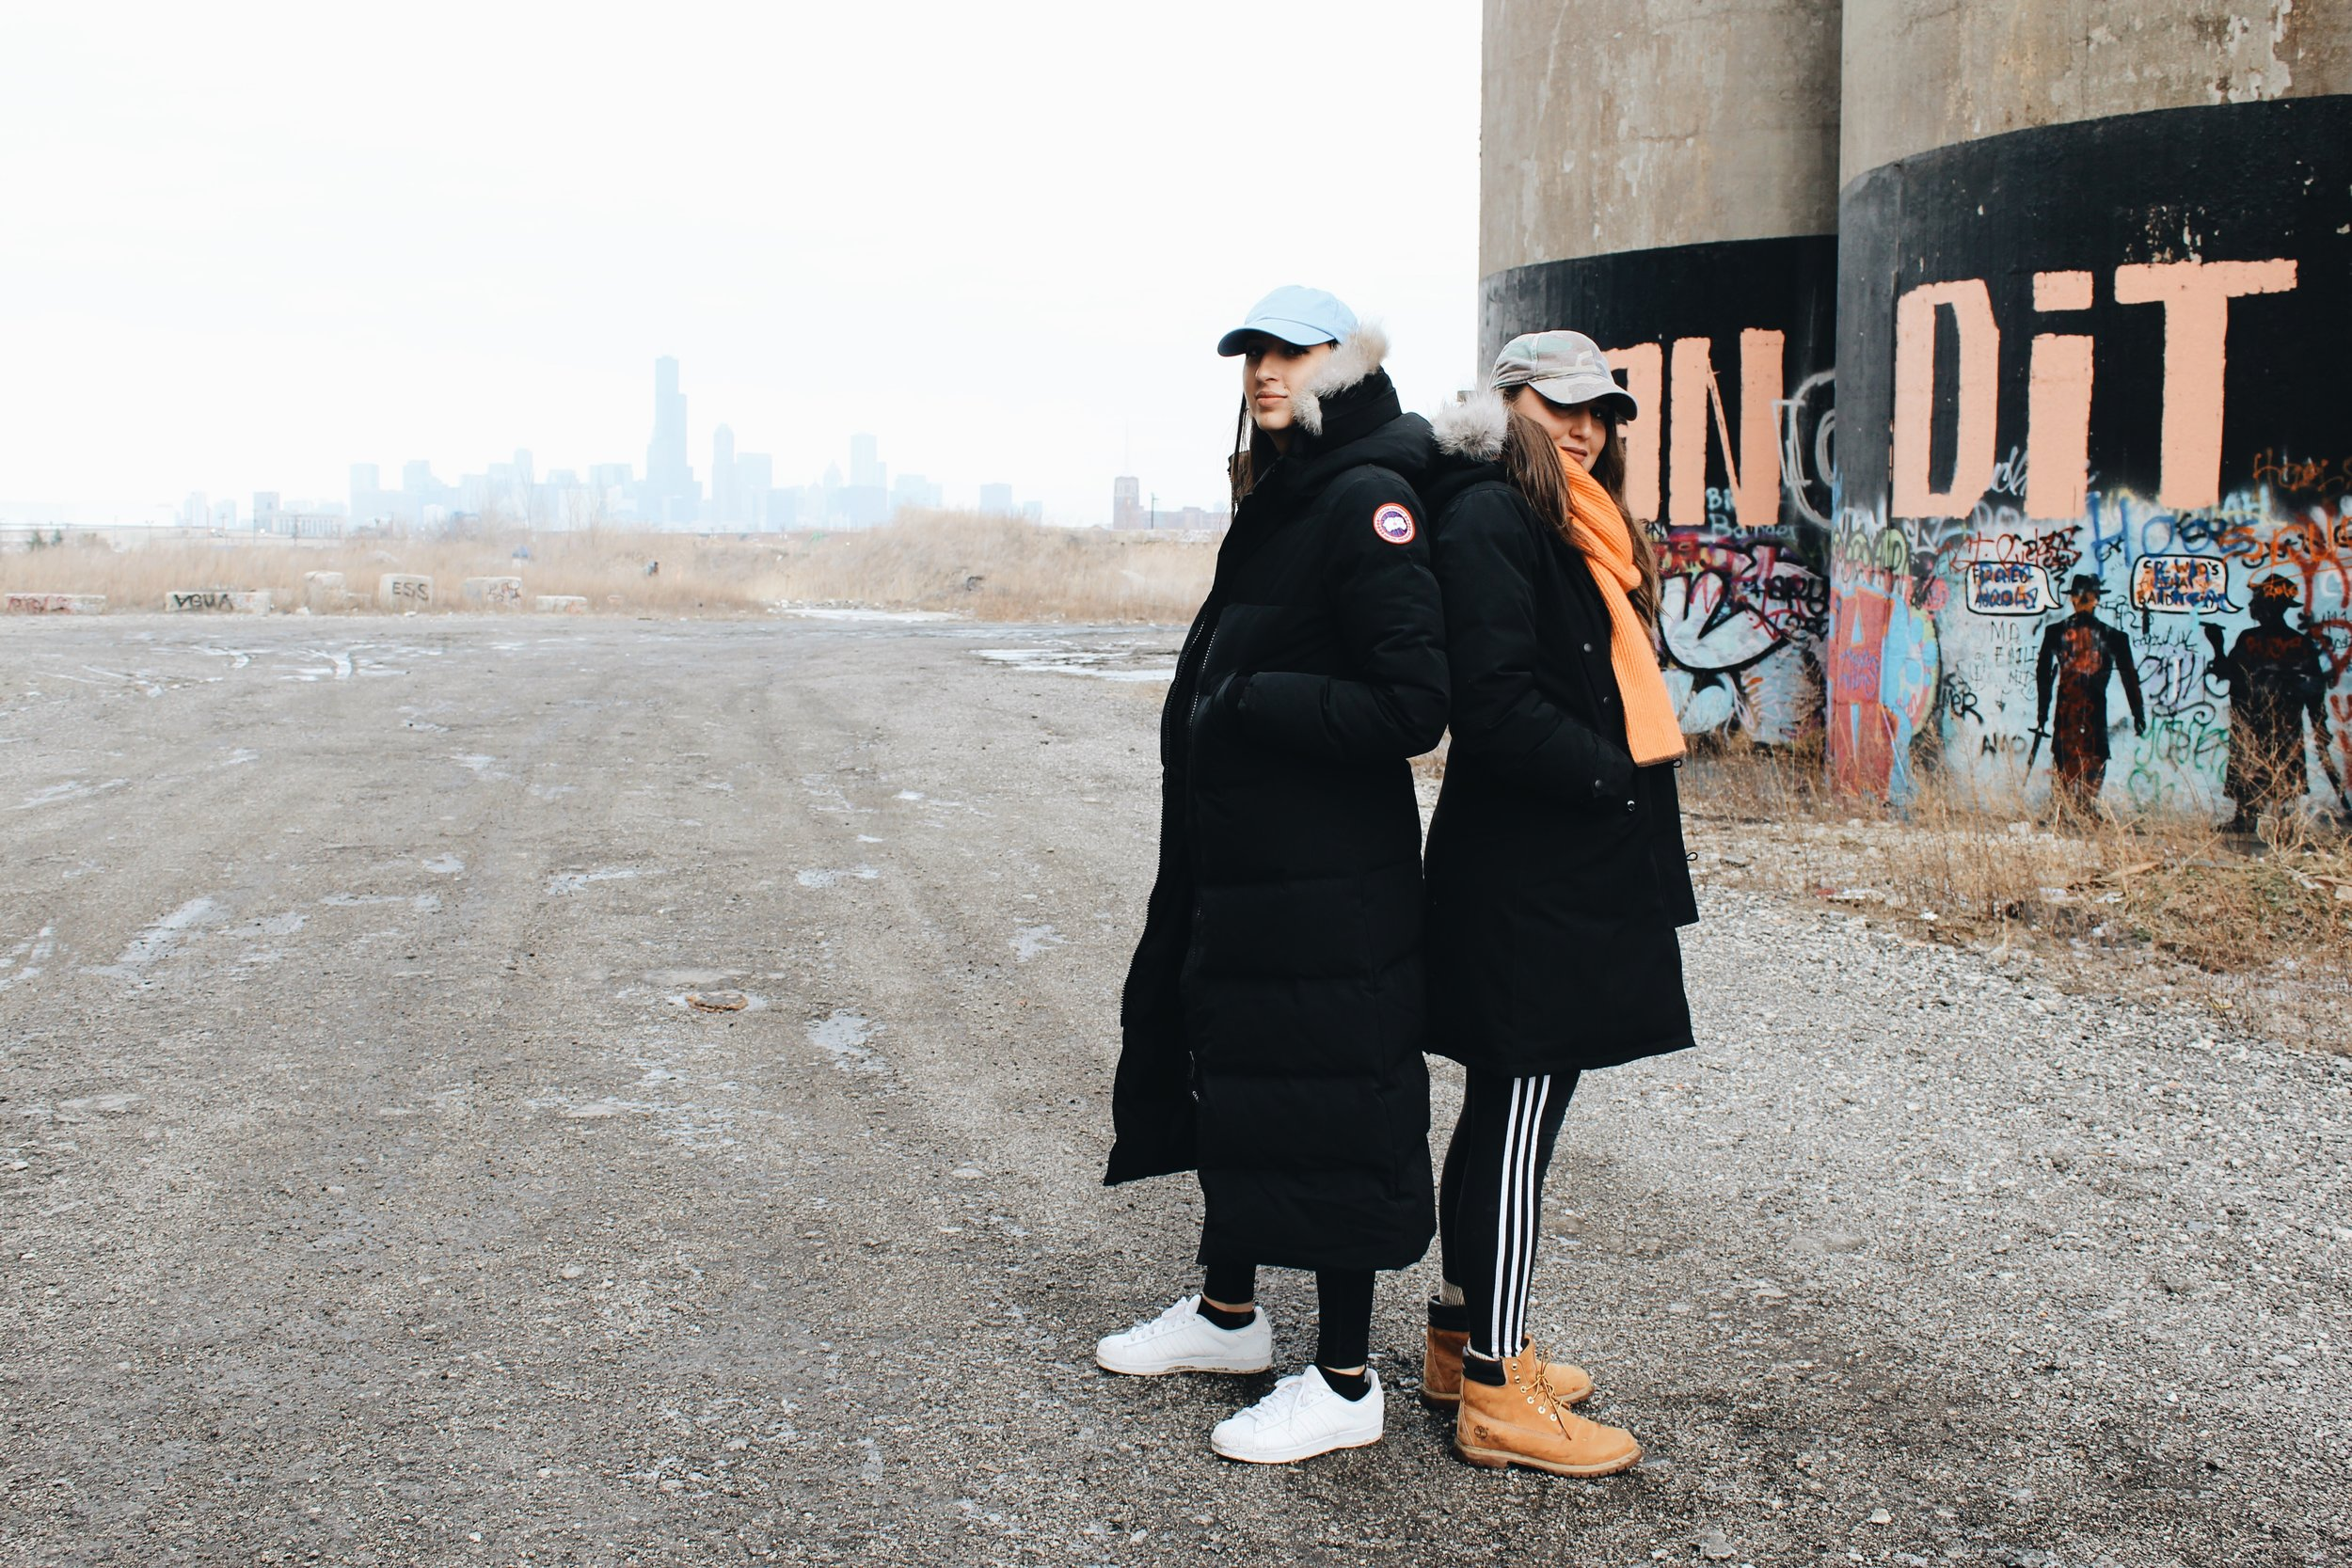 Amanda wears hat, Anti Social Social Club; coat, Canada Goose; leggings, Girlfriend Collective; sneakers, Adidas. Naomi wears hat, Topshop; scarf, Hermès; coat, Canada Goose; leggings, Adidas; boots, Timberland.